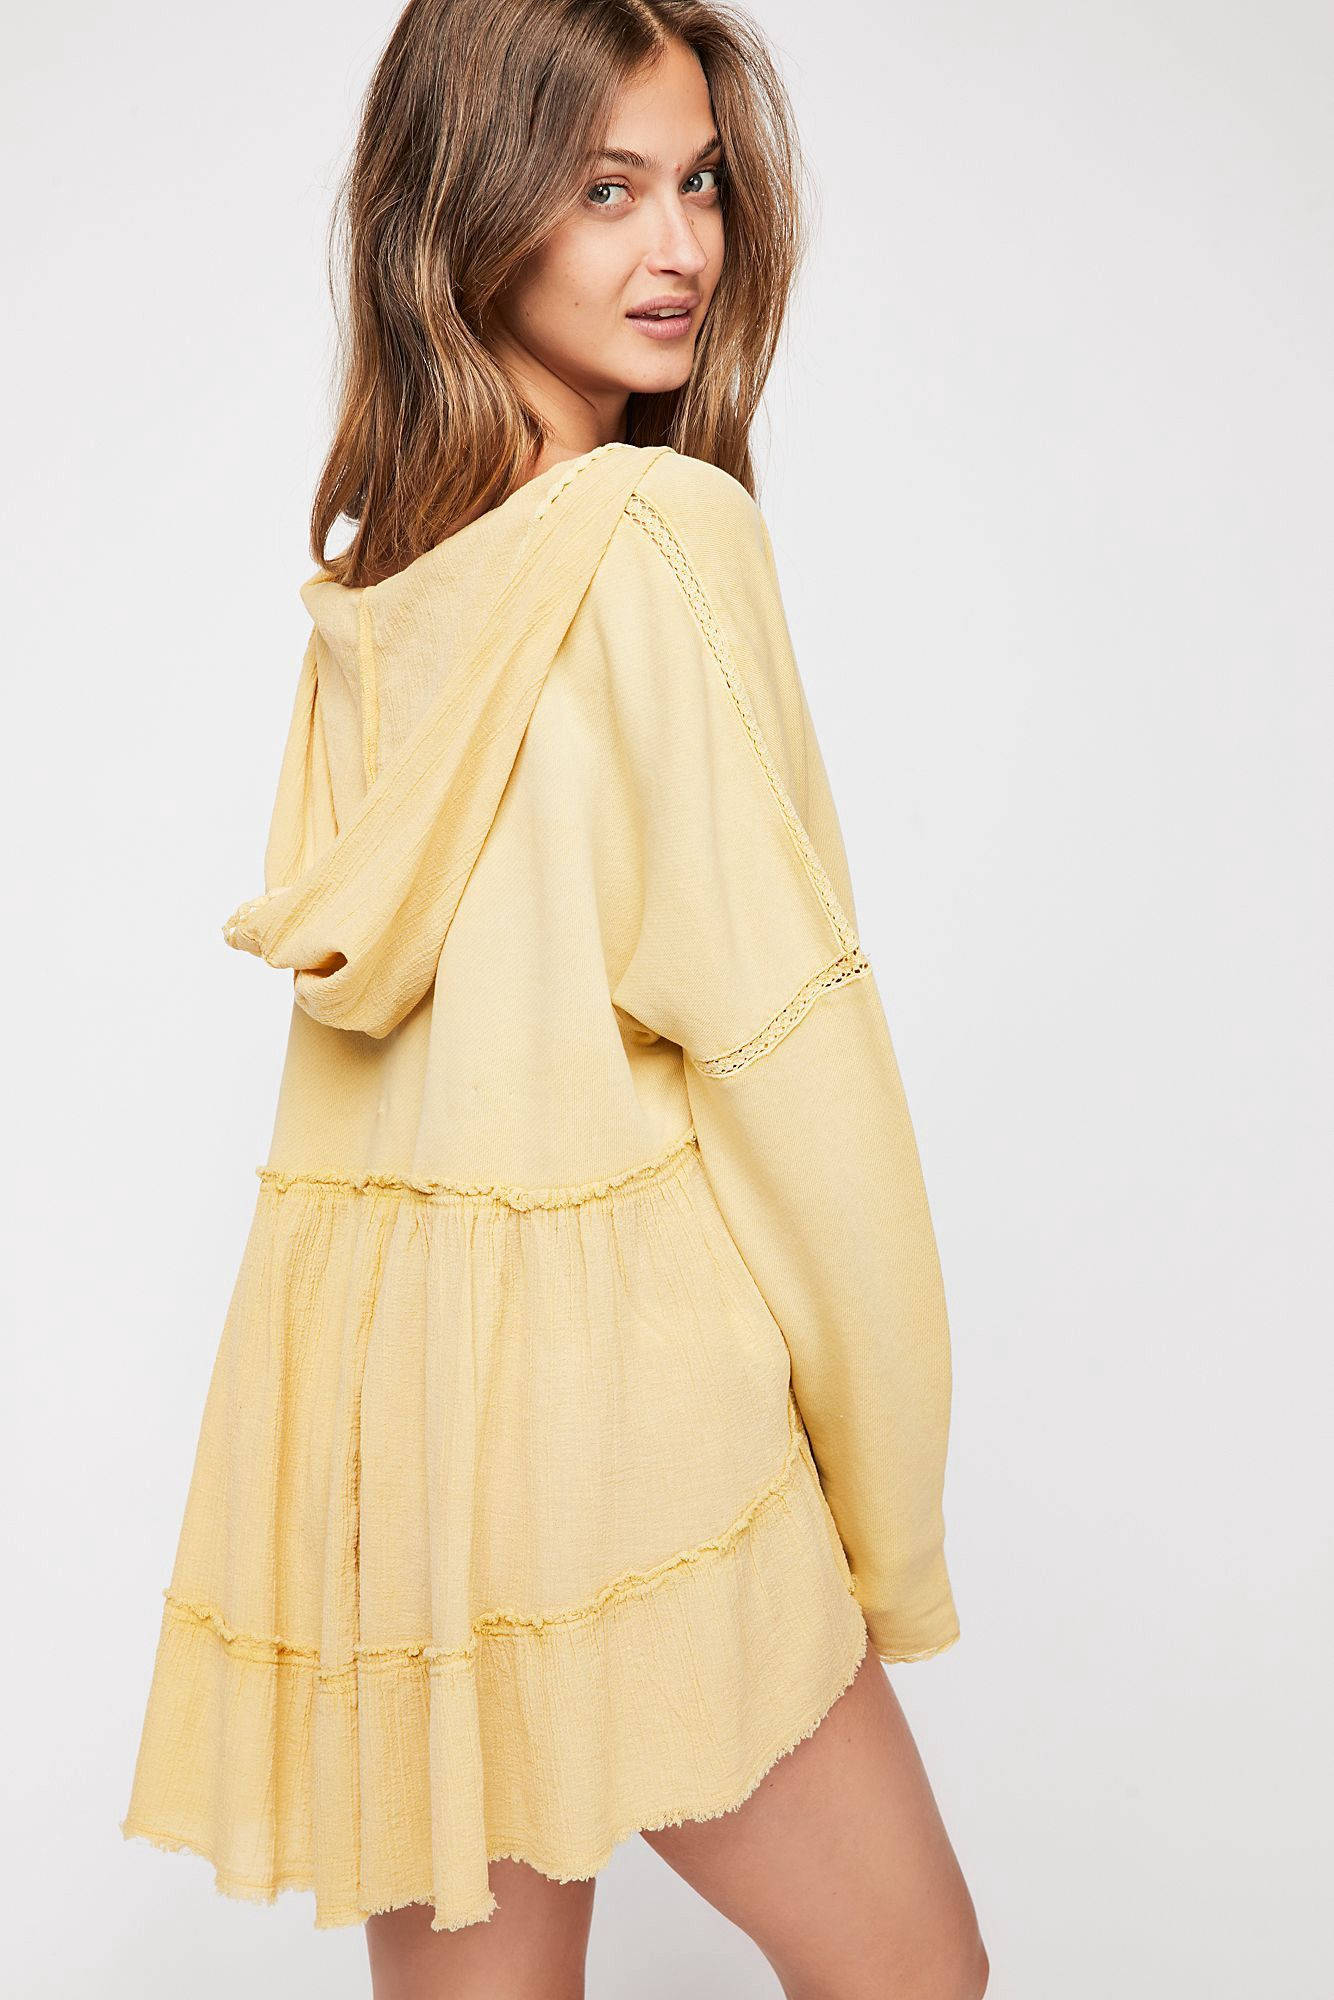 f70217ed45d77 Free People Sunshine'S Out Pullover Hoodie - Warm Tahini S ...